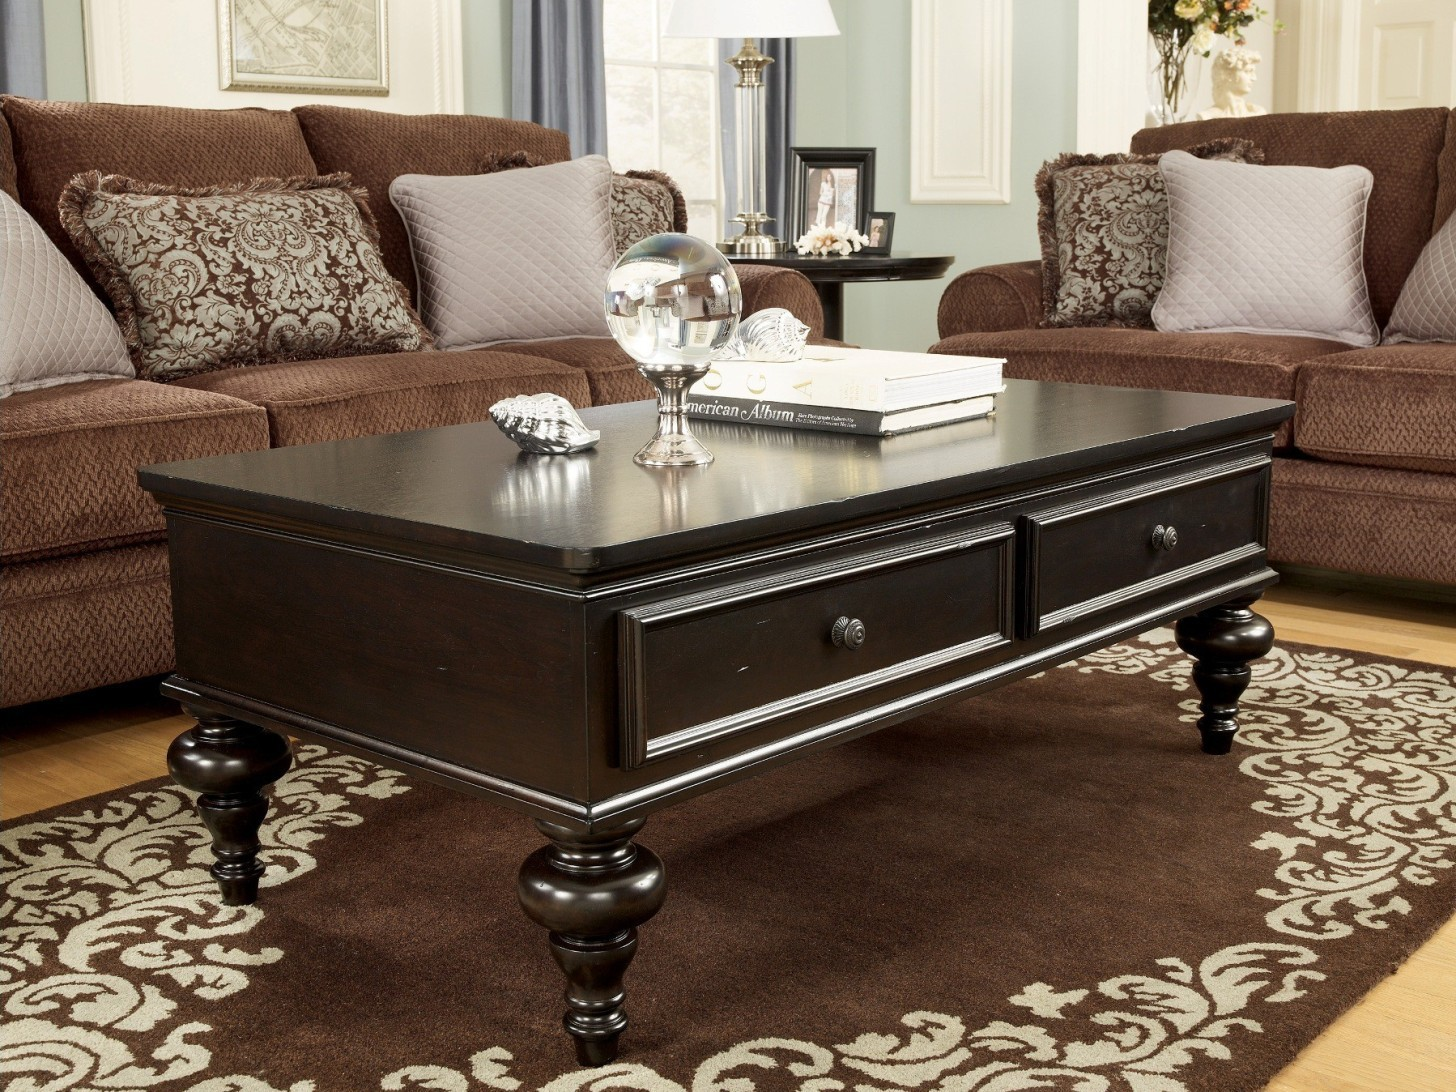 Dark Wooden Coffee Table ~ Classic dark wood coffee table